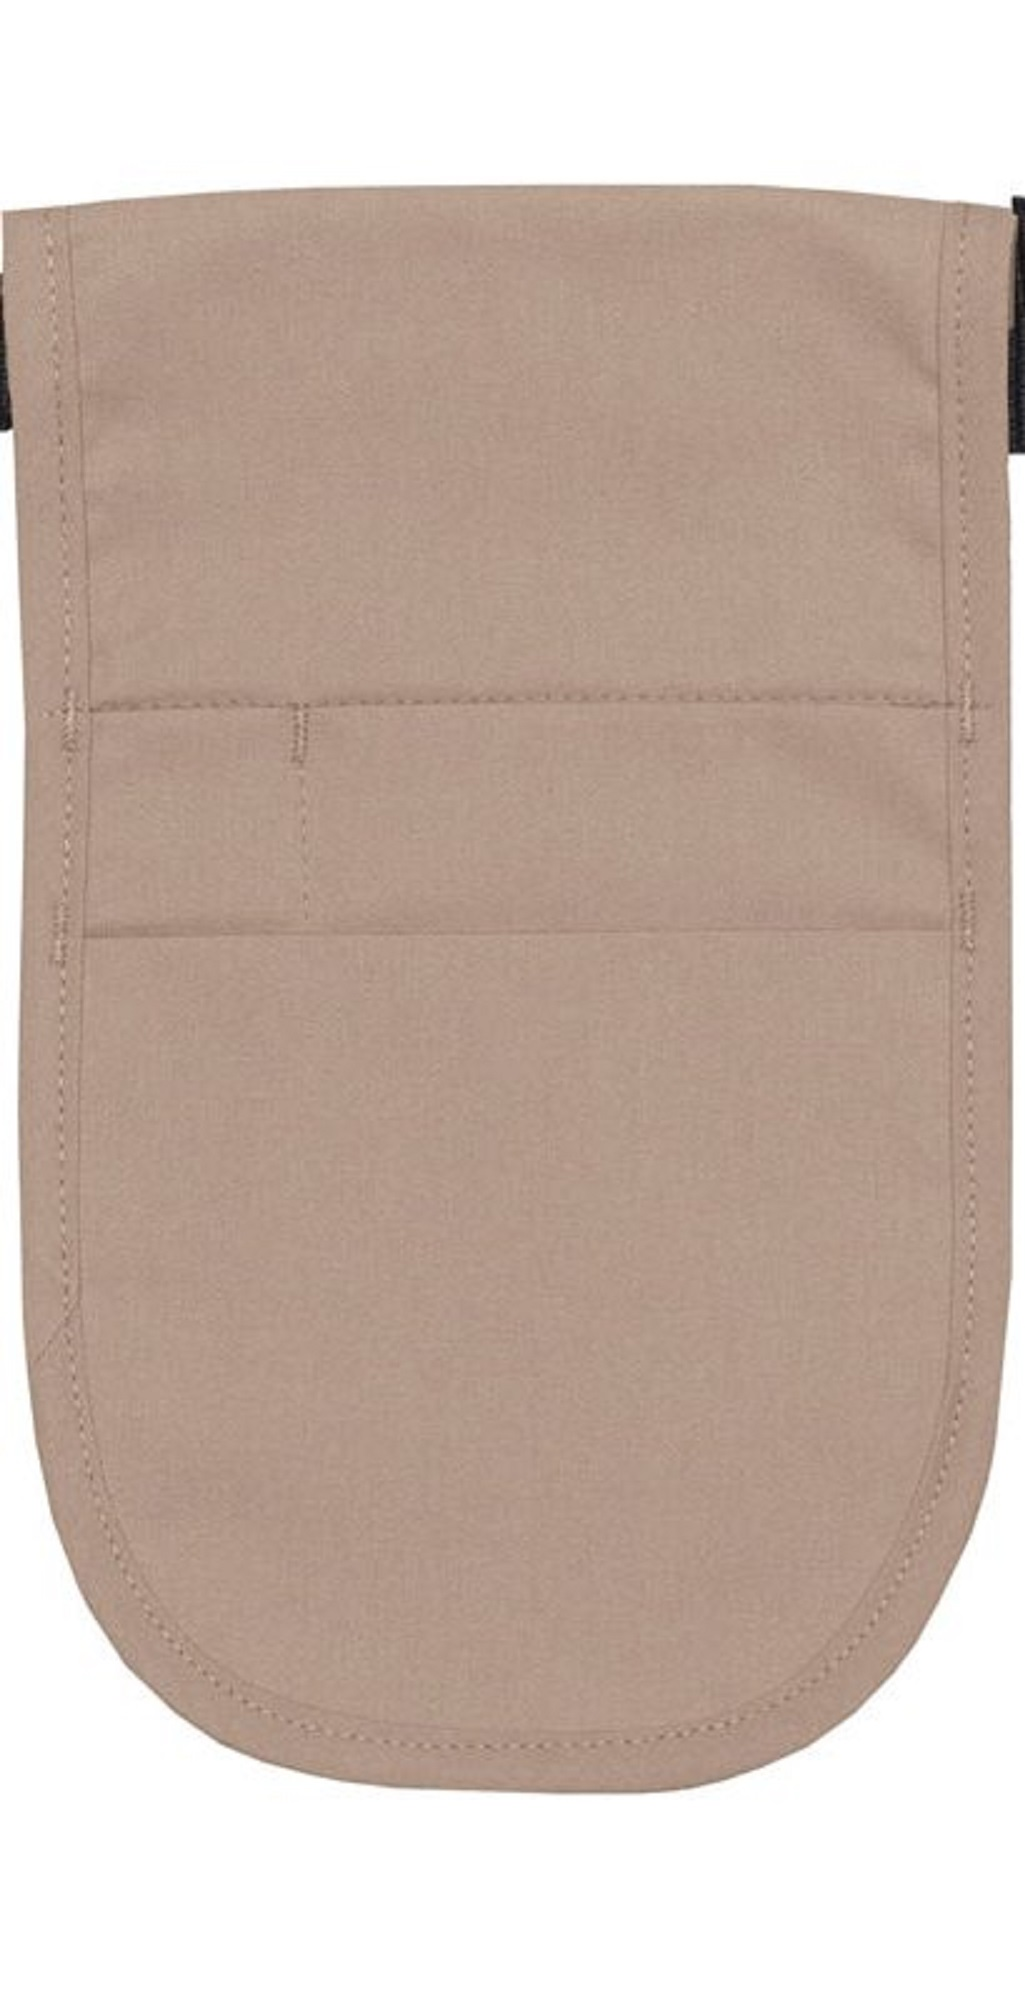 Style 152 Professional Money Pouch Aprons with Attached Belt - Khaki